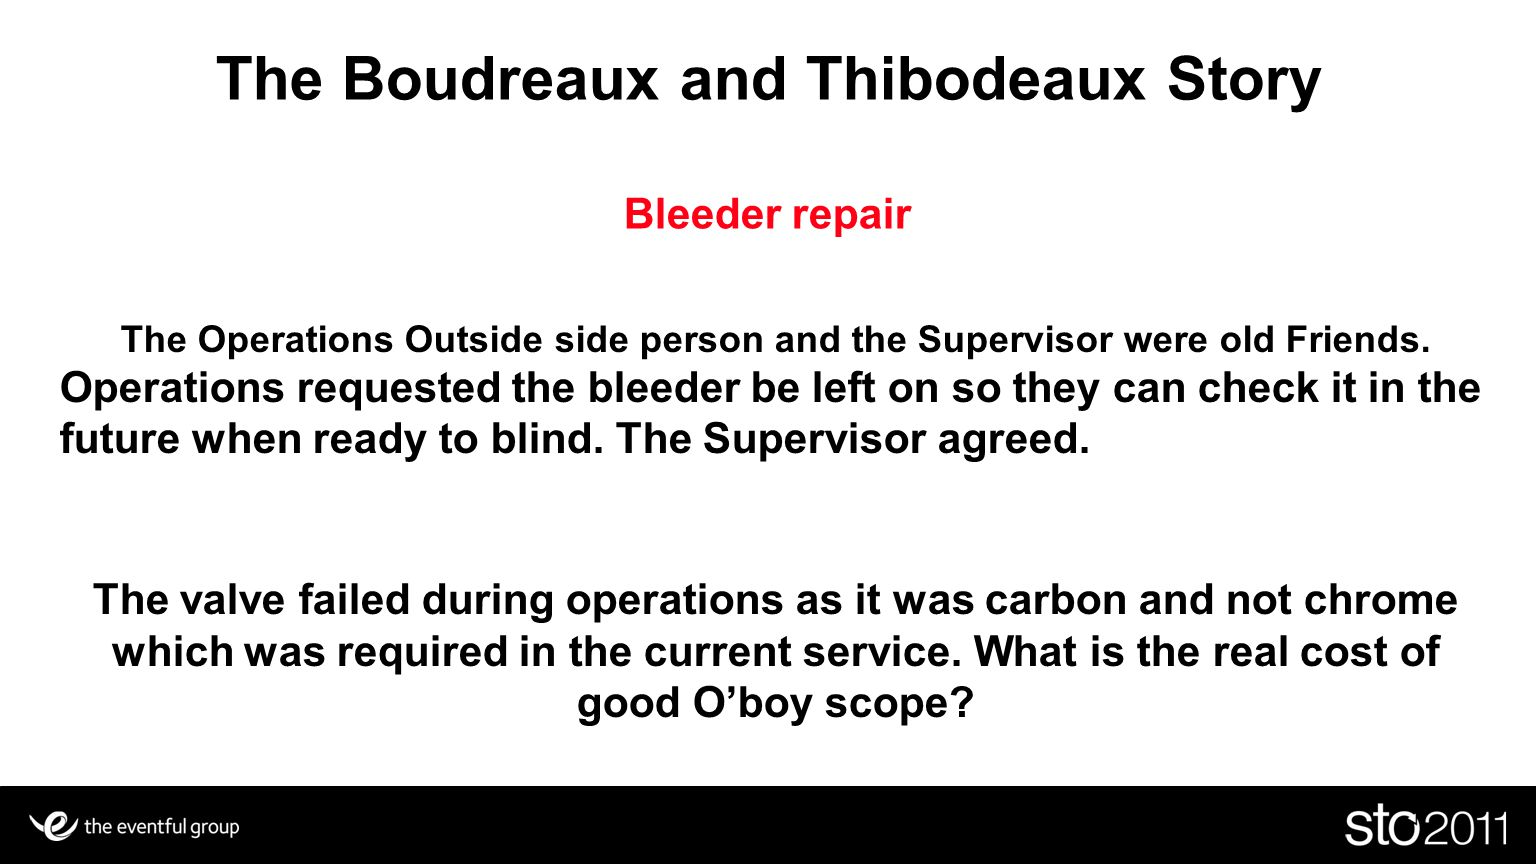 The Boudreaux and Thibodeaux Story